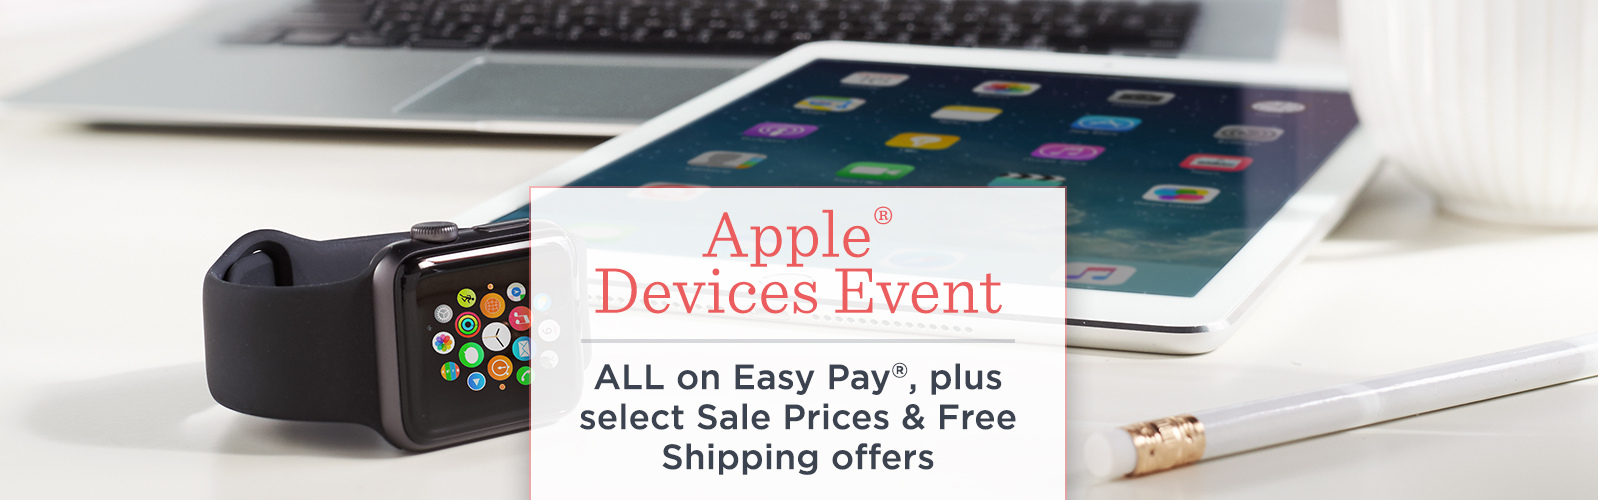 Apple® Devices Event  ALL on Easy Pay®, plus select Sale Prices & Free Shipping offers